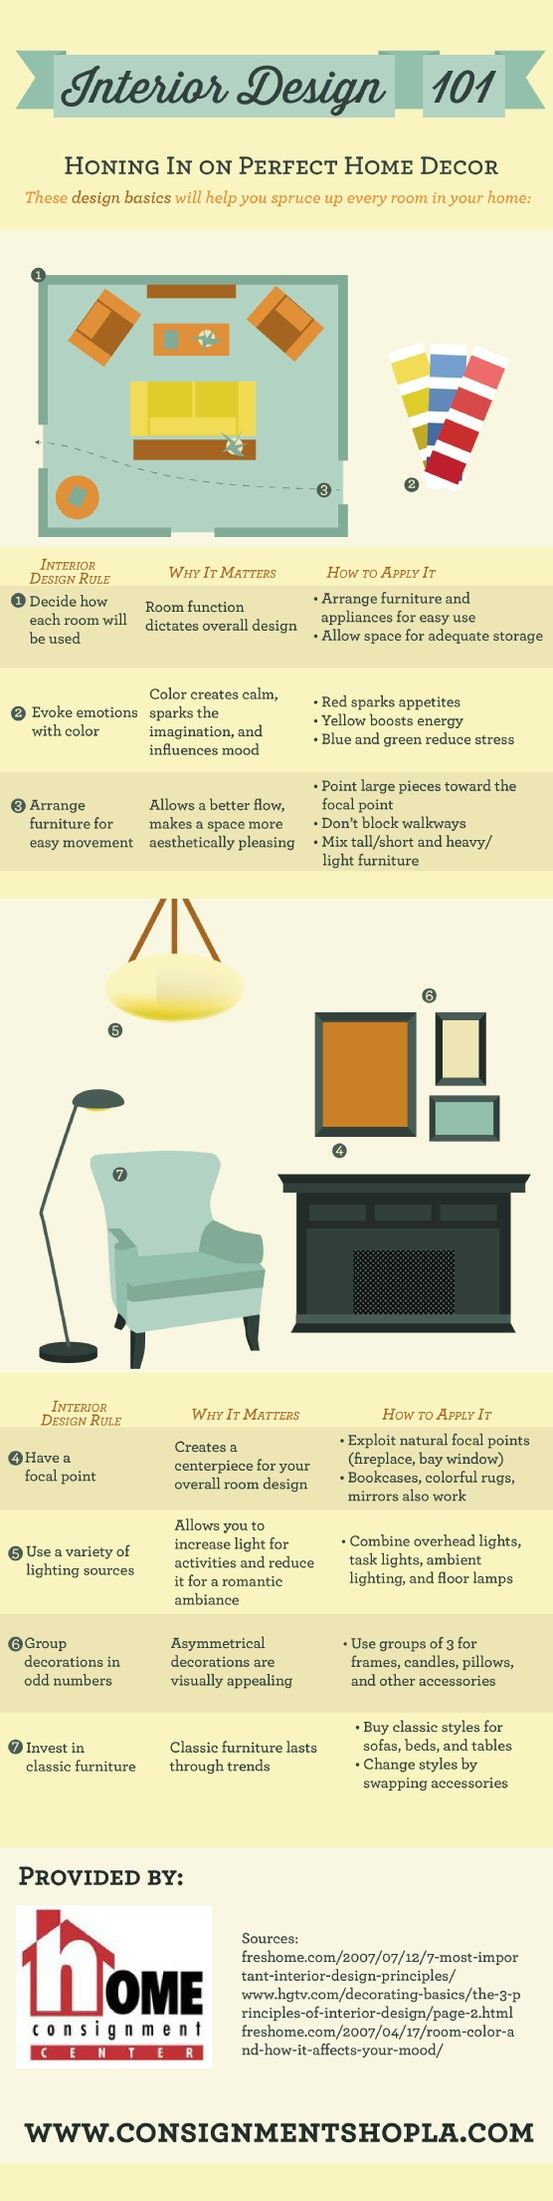 Are you interested in changing up your home décor? There are a number of factors you need to consider when installing lighting and rearranging your home furniture. You can get started on your home decorating journey by reading through this interior design infographic.